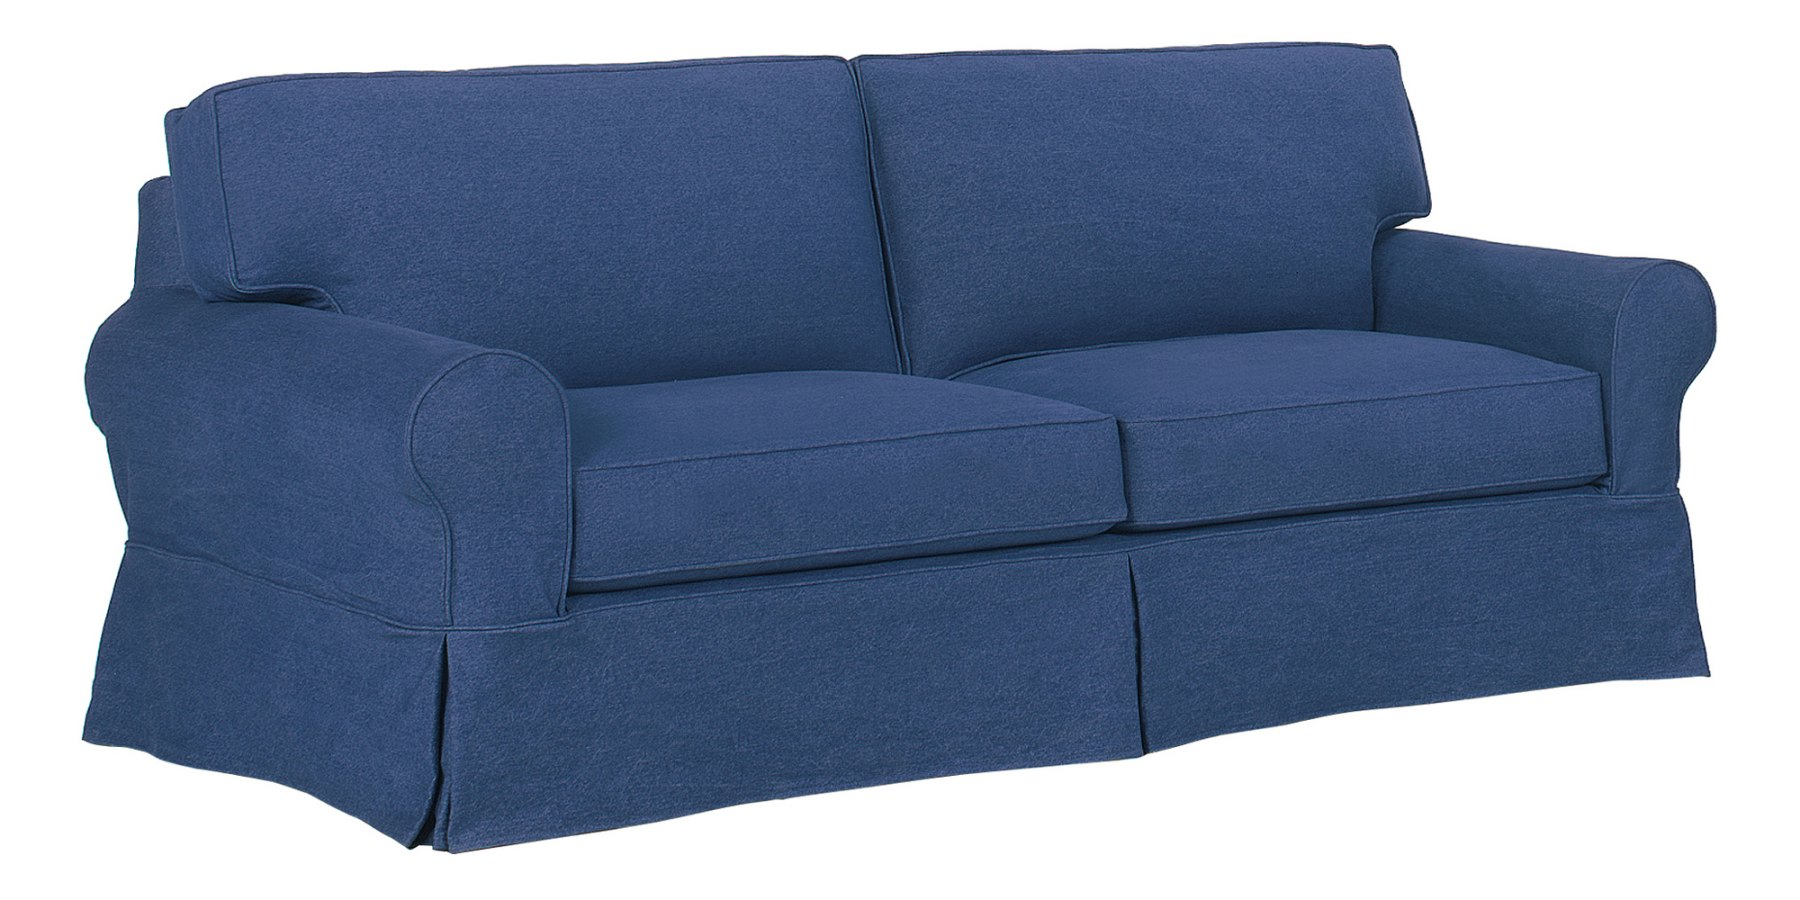 Denim sofa slipcovers sure fit designer denim furniture slipcover bed bath beyond thesofa Denim couch and loveseat